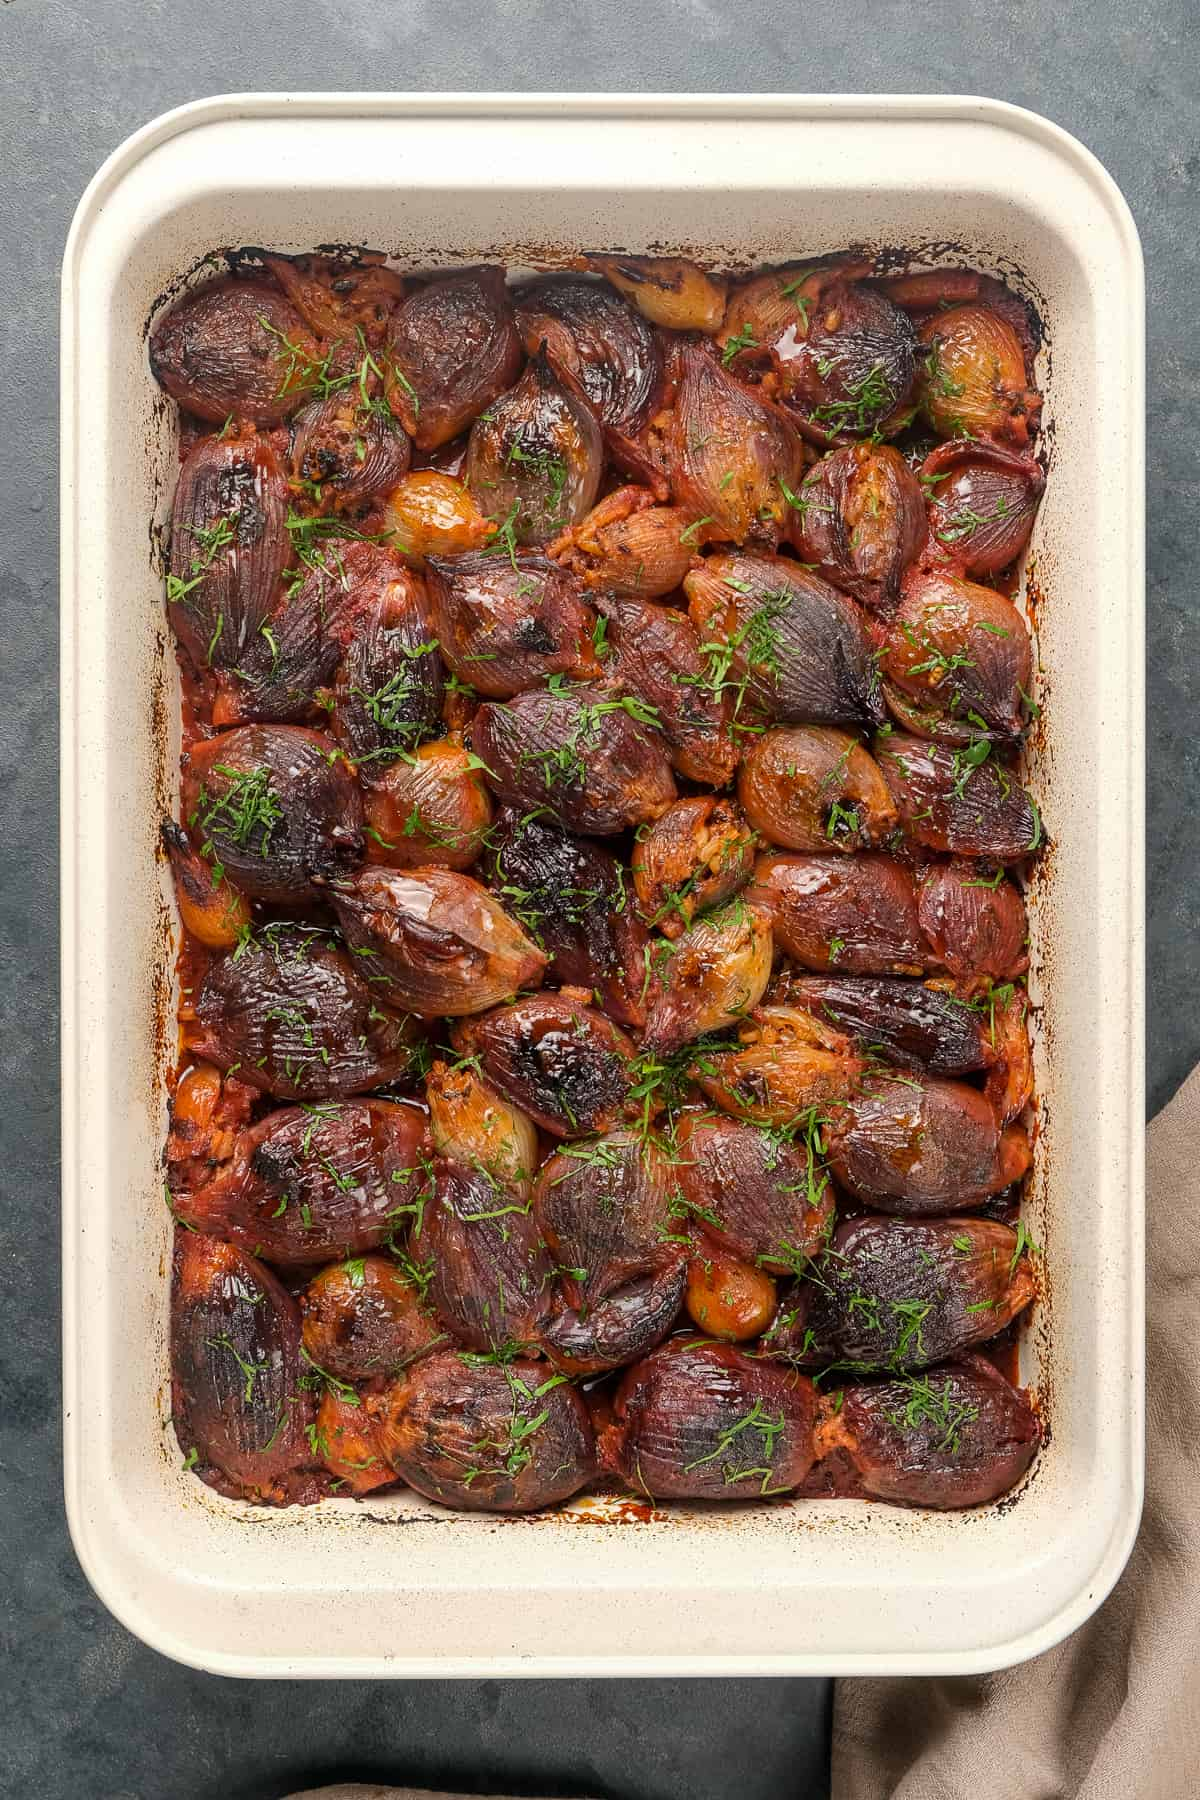 Stuffed and roasted onions with a tomato sauce in a baking pan.